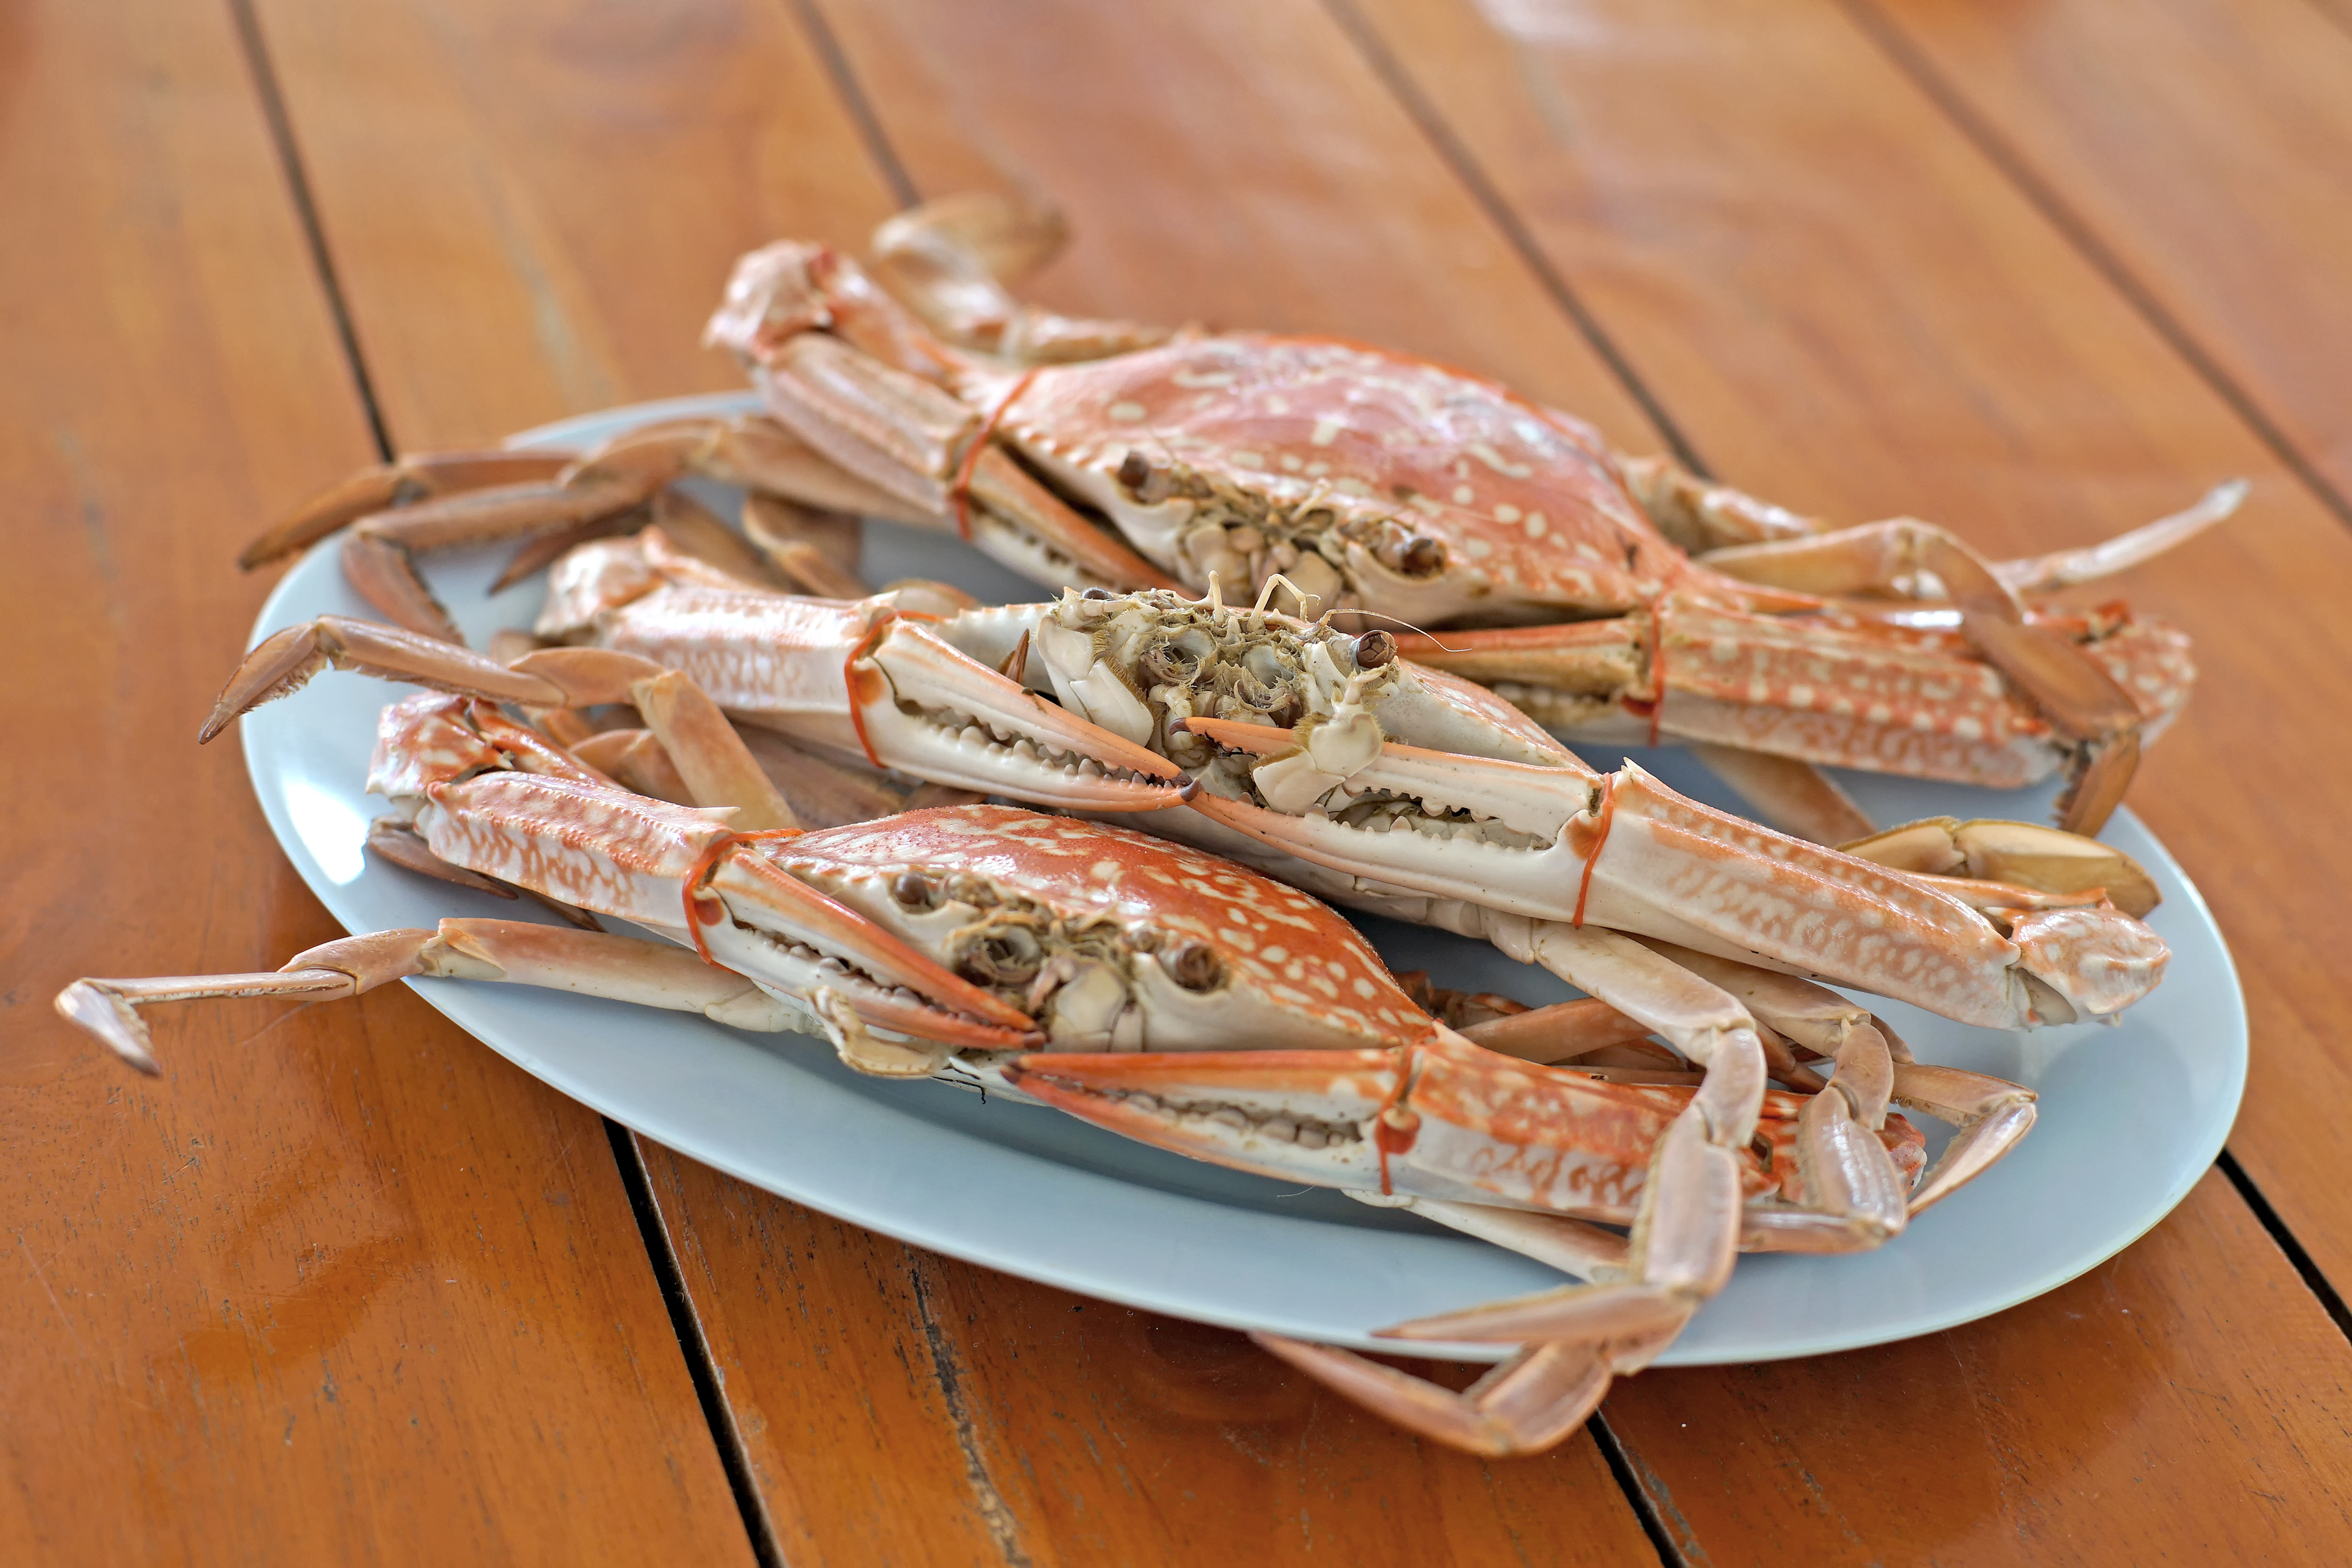 The Nutrition in Steamed Crabs